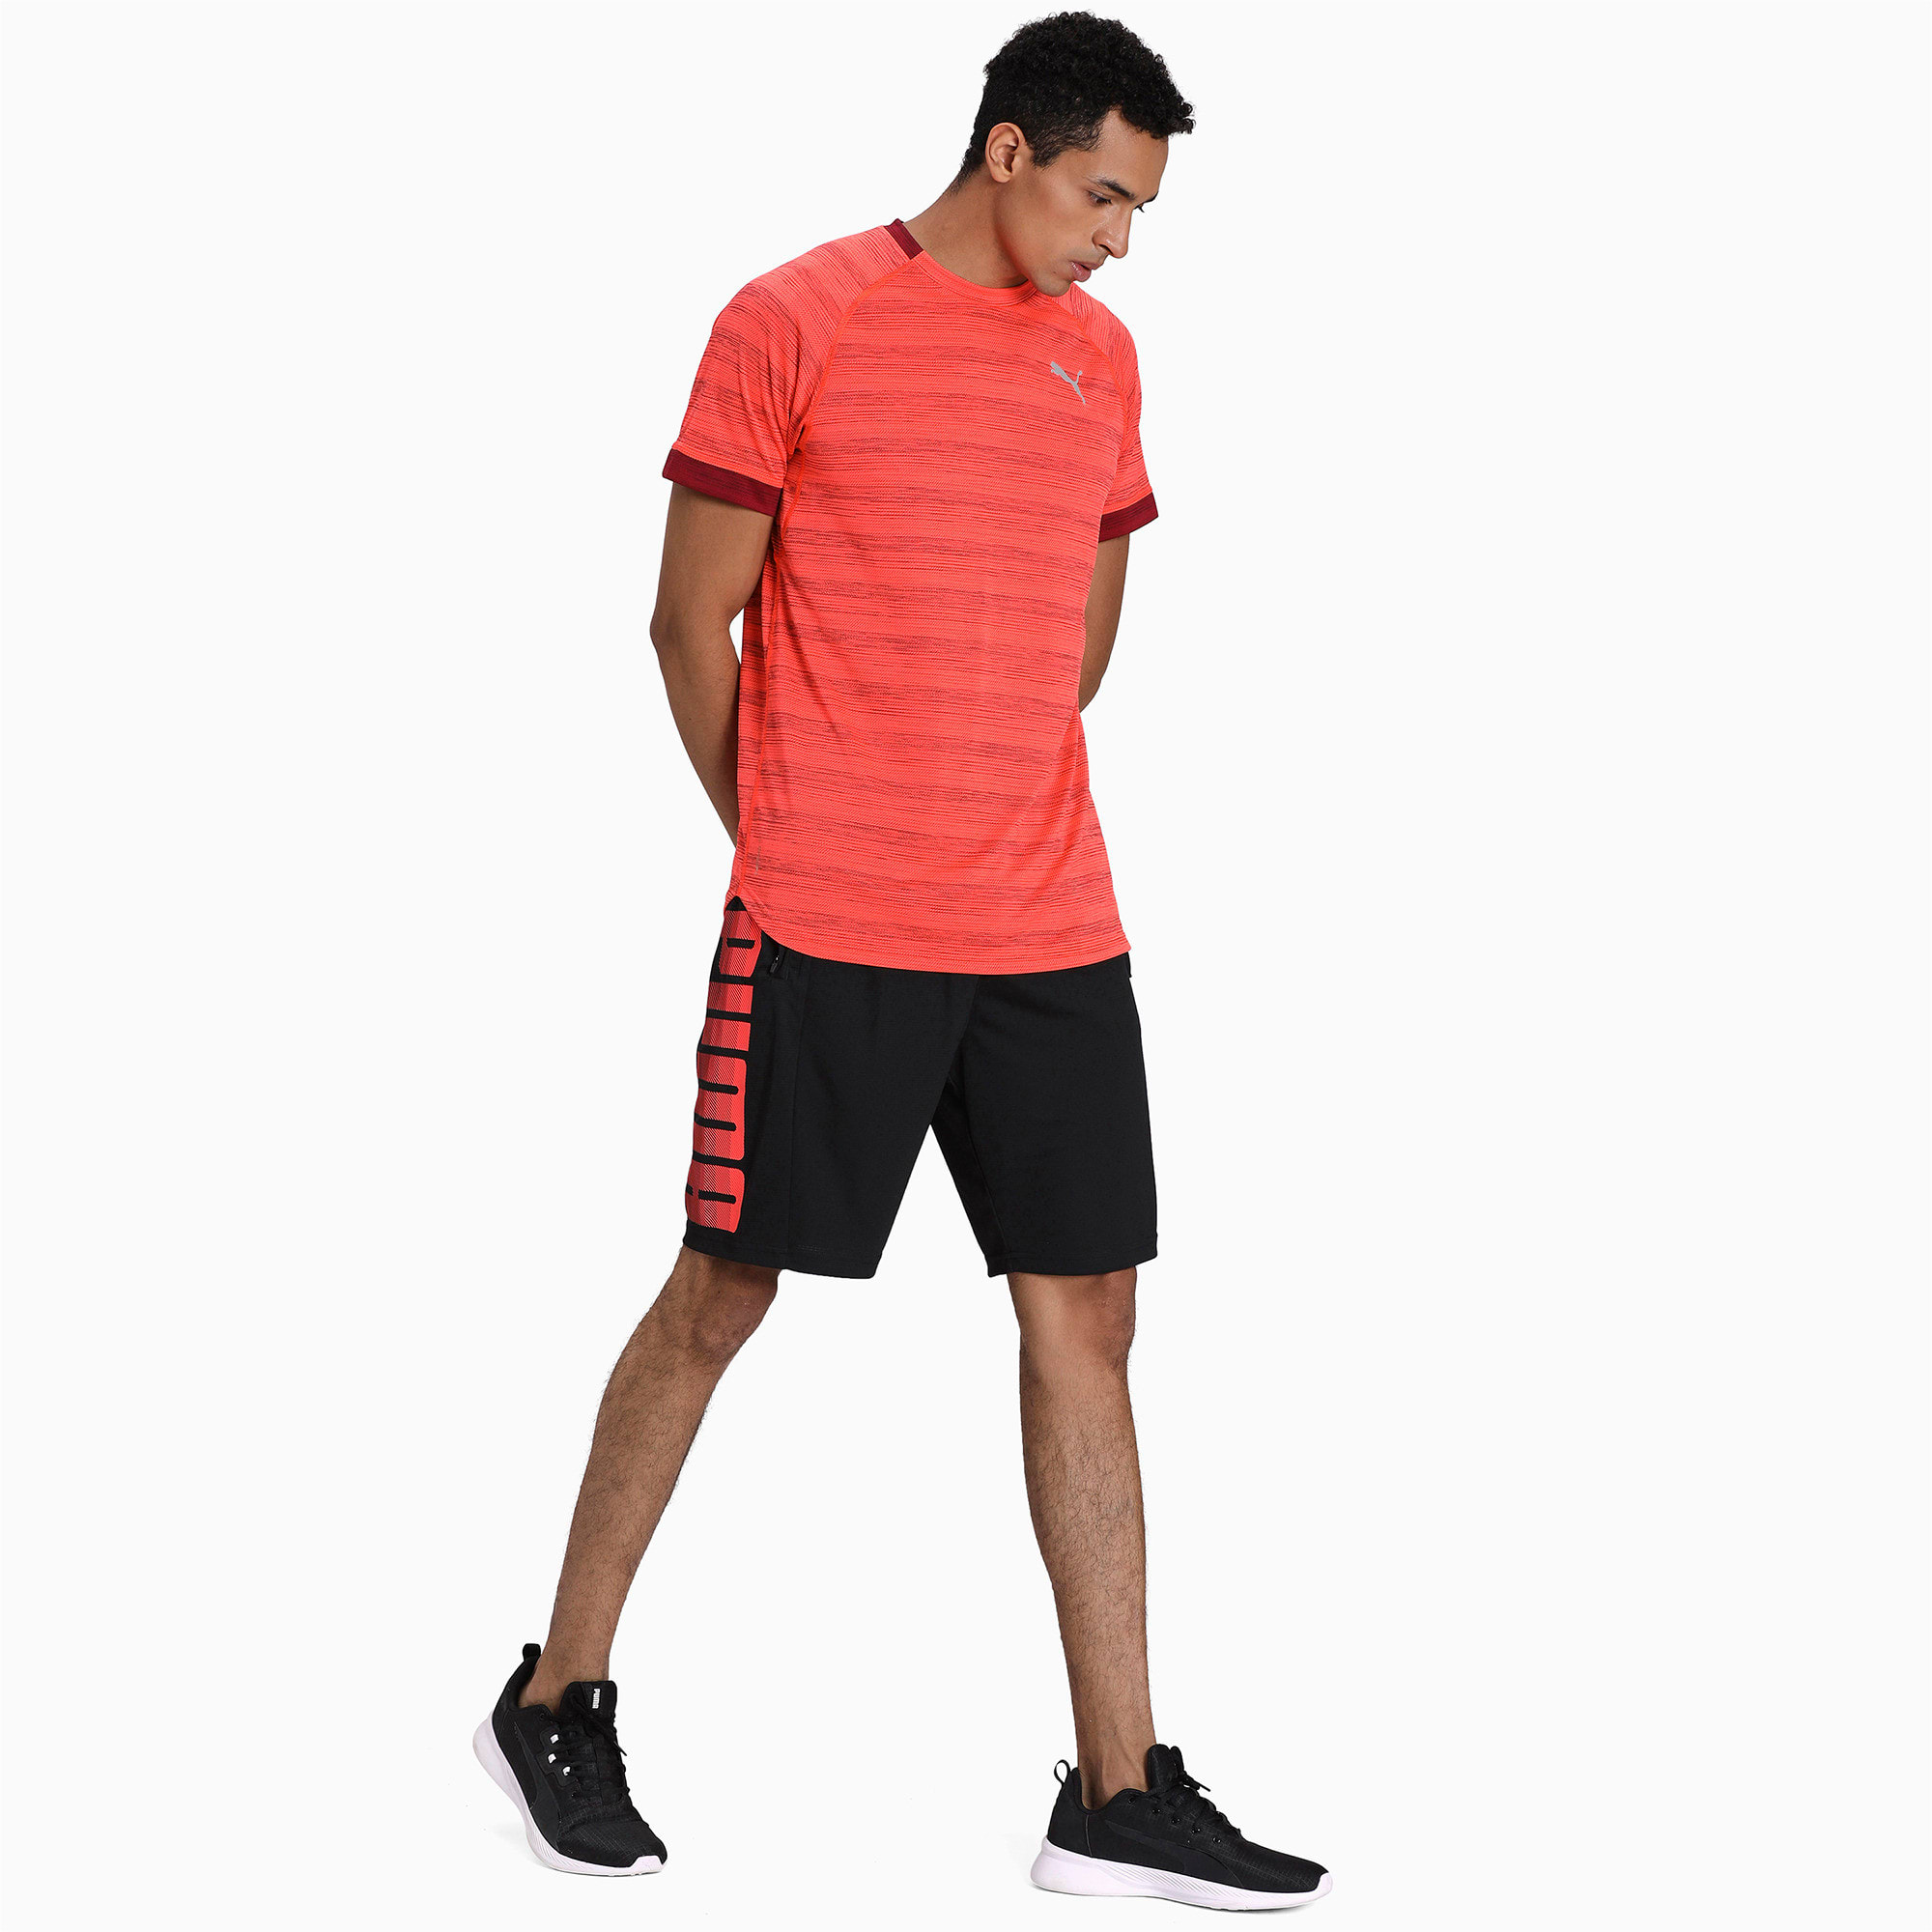 Thumbnail 3 of Collective Knitted Men's Training Shorts, Puma Black-Nrgy Red, medium-IND